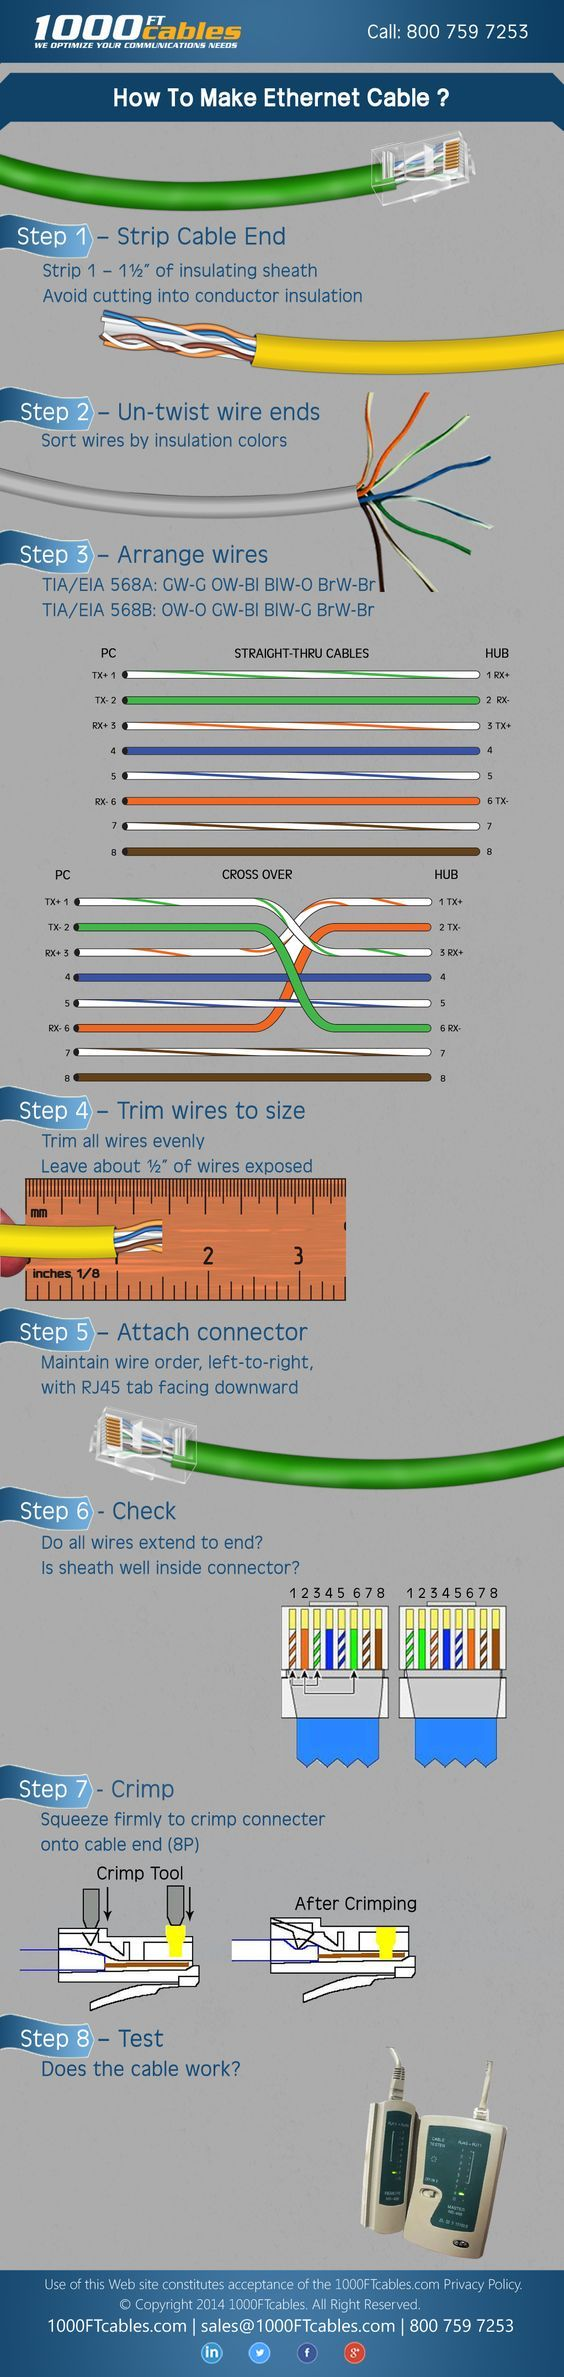 55 Best Tech Images On Pinterest Technology Computer Cisco Rj45 E1 Pinout Diagram Pinoutsru How To Make Network Cable